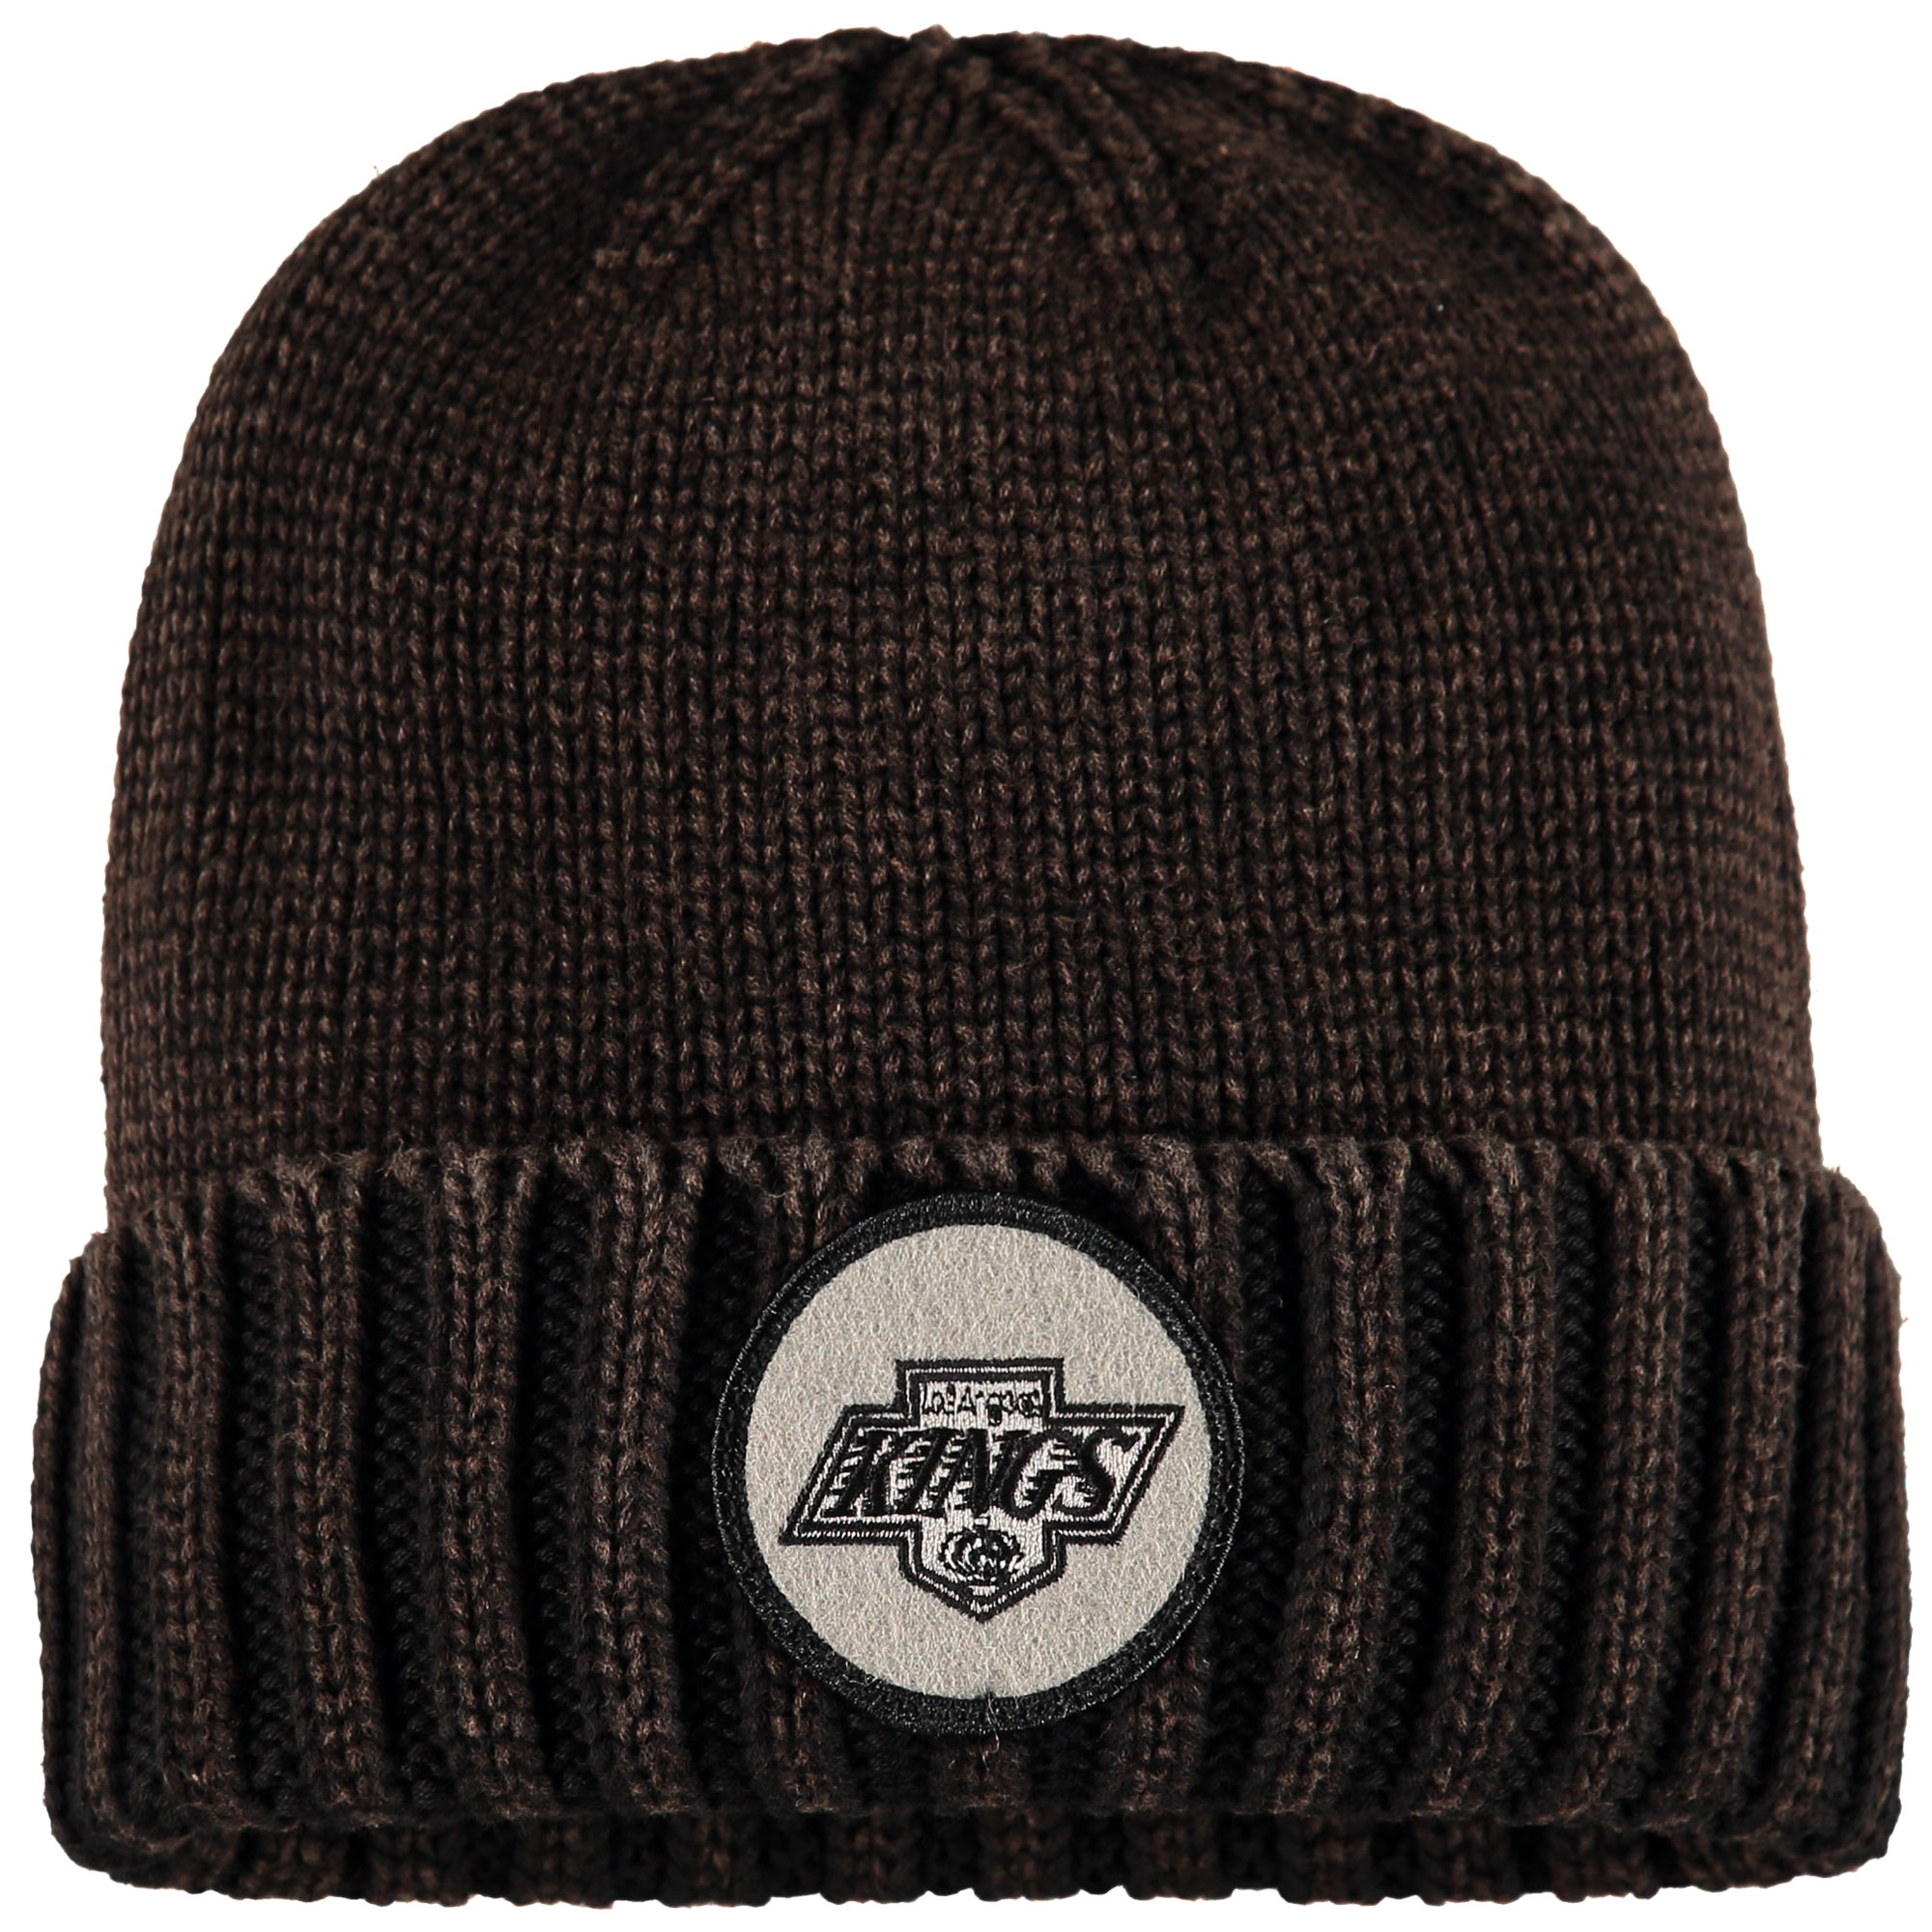 Los Angeles Kings Mitchell & Ness Vintage Ribbed Cuffed Knit Hat - Brown - OSFA